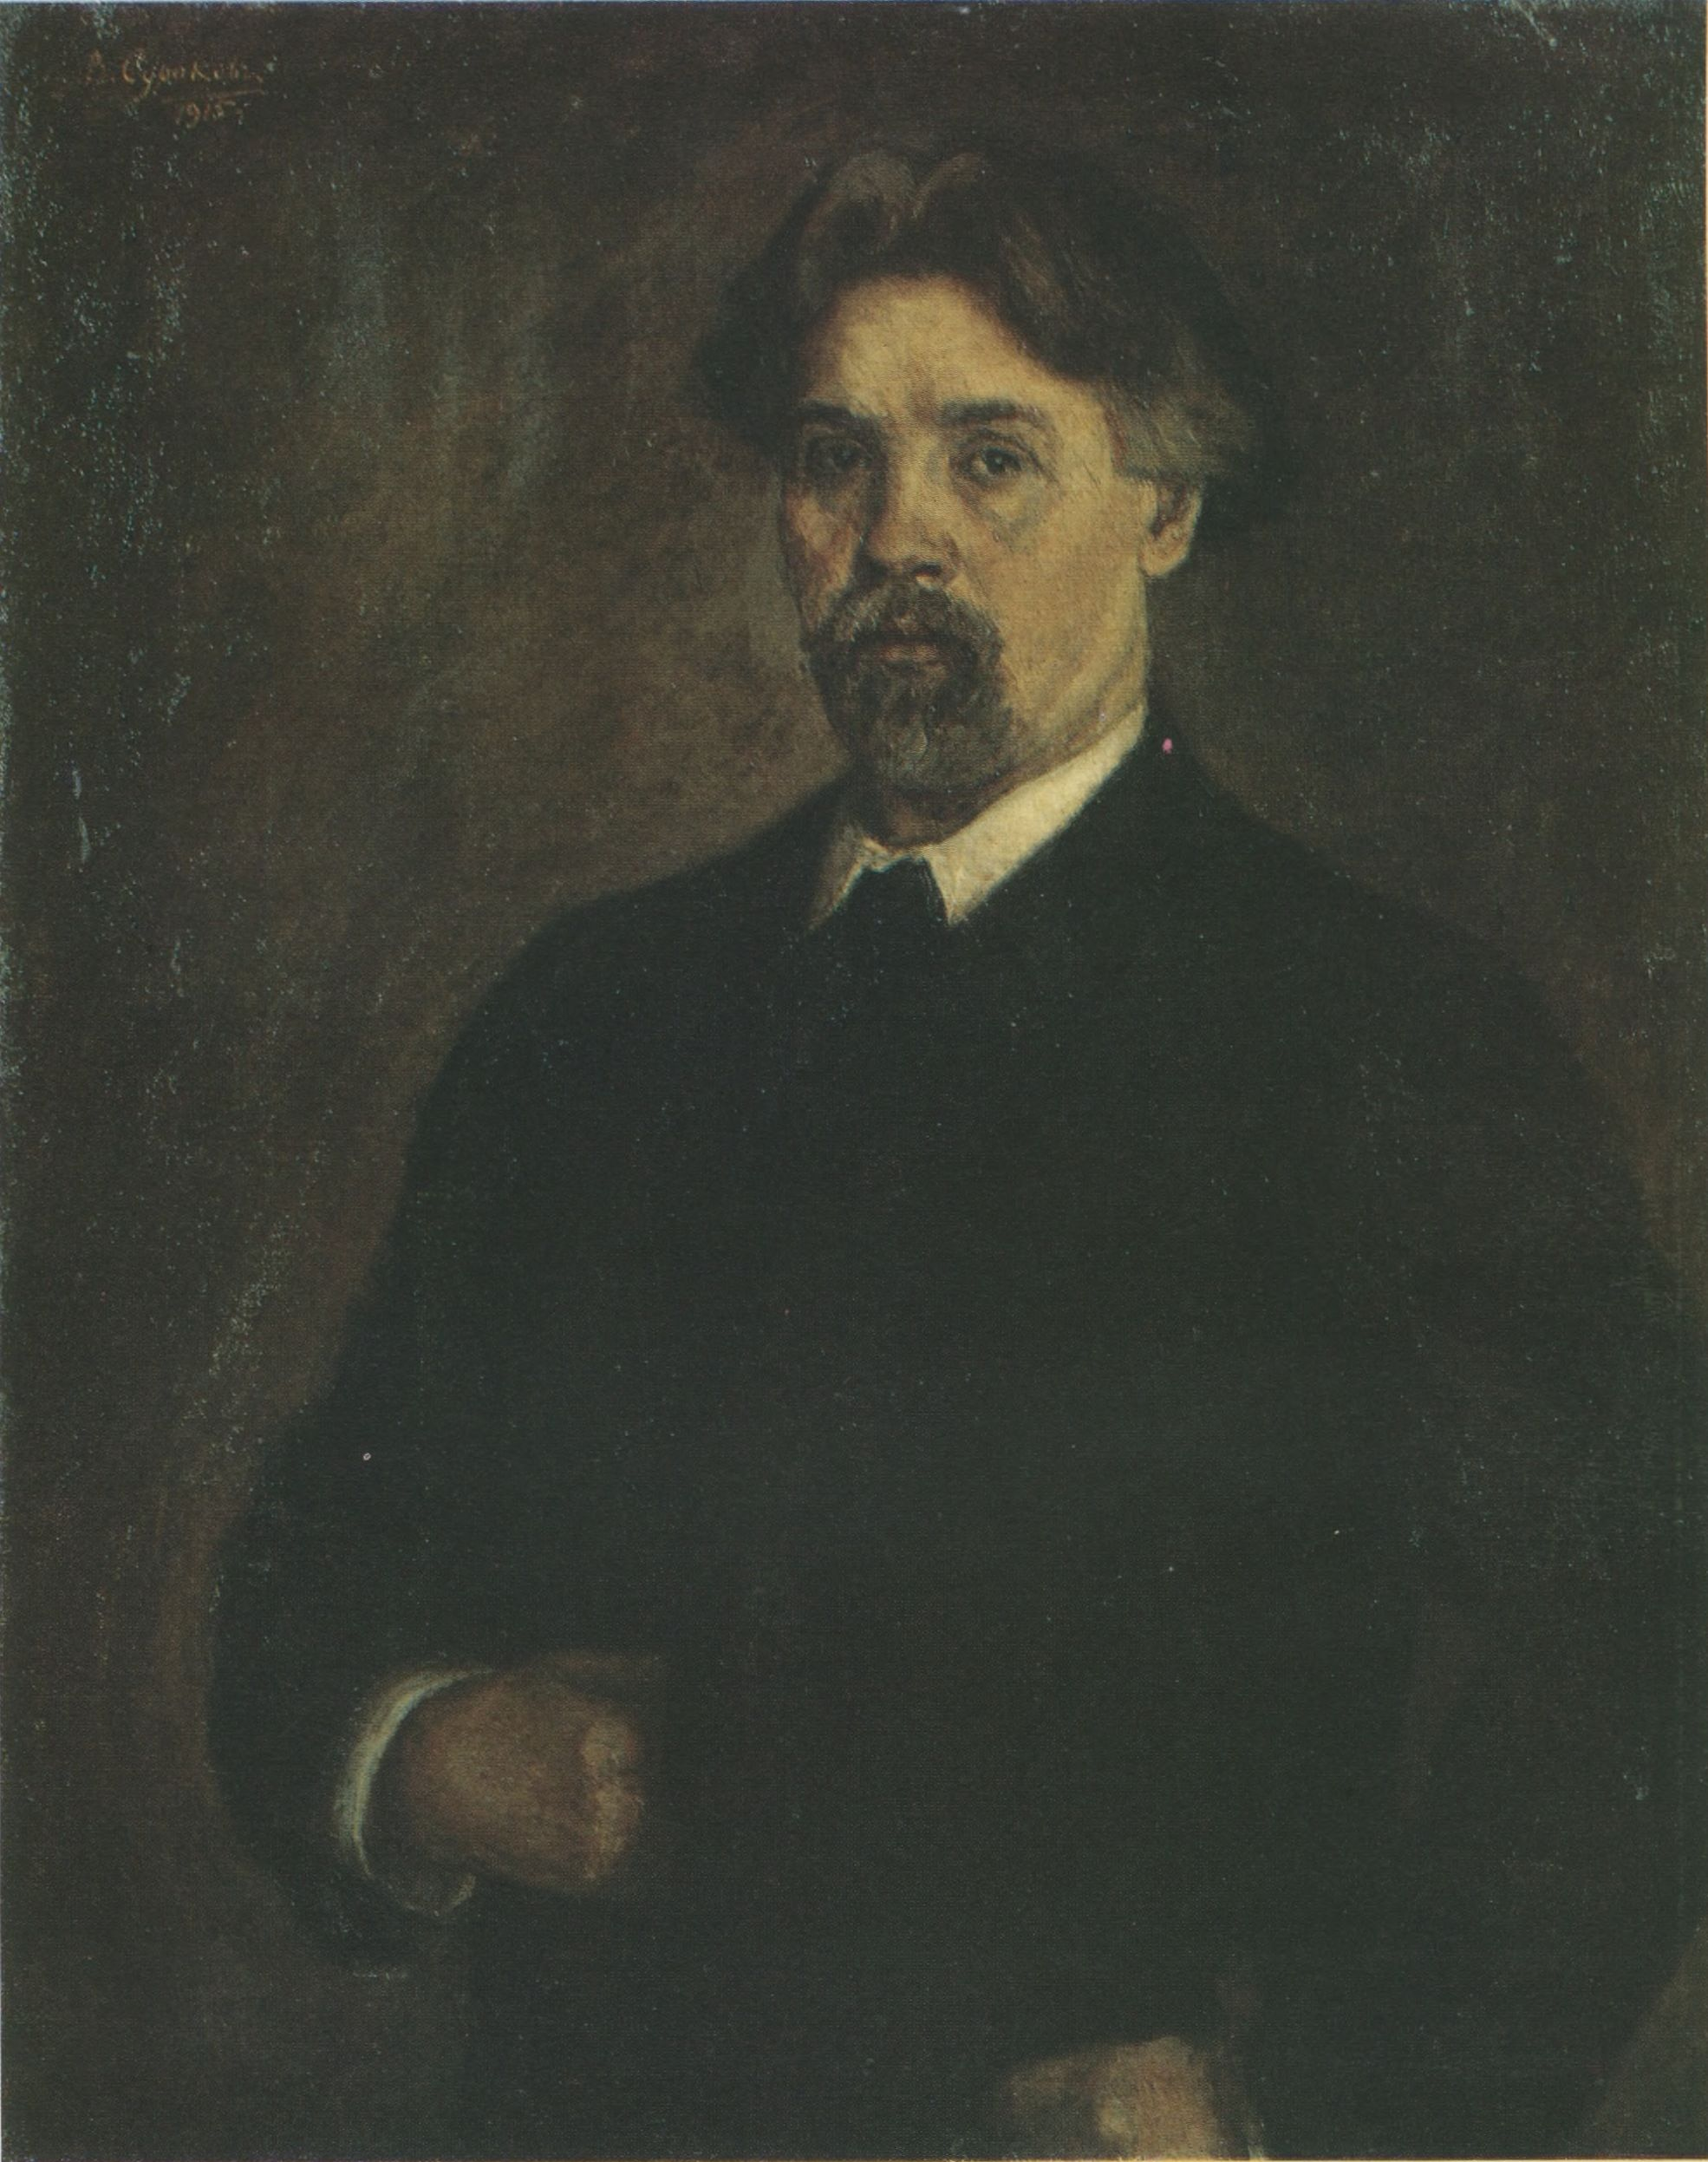 74. Автопортрет. 1915 (Self-portrait. 1915)